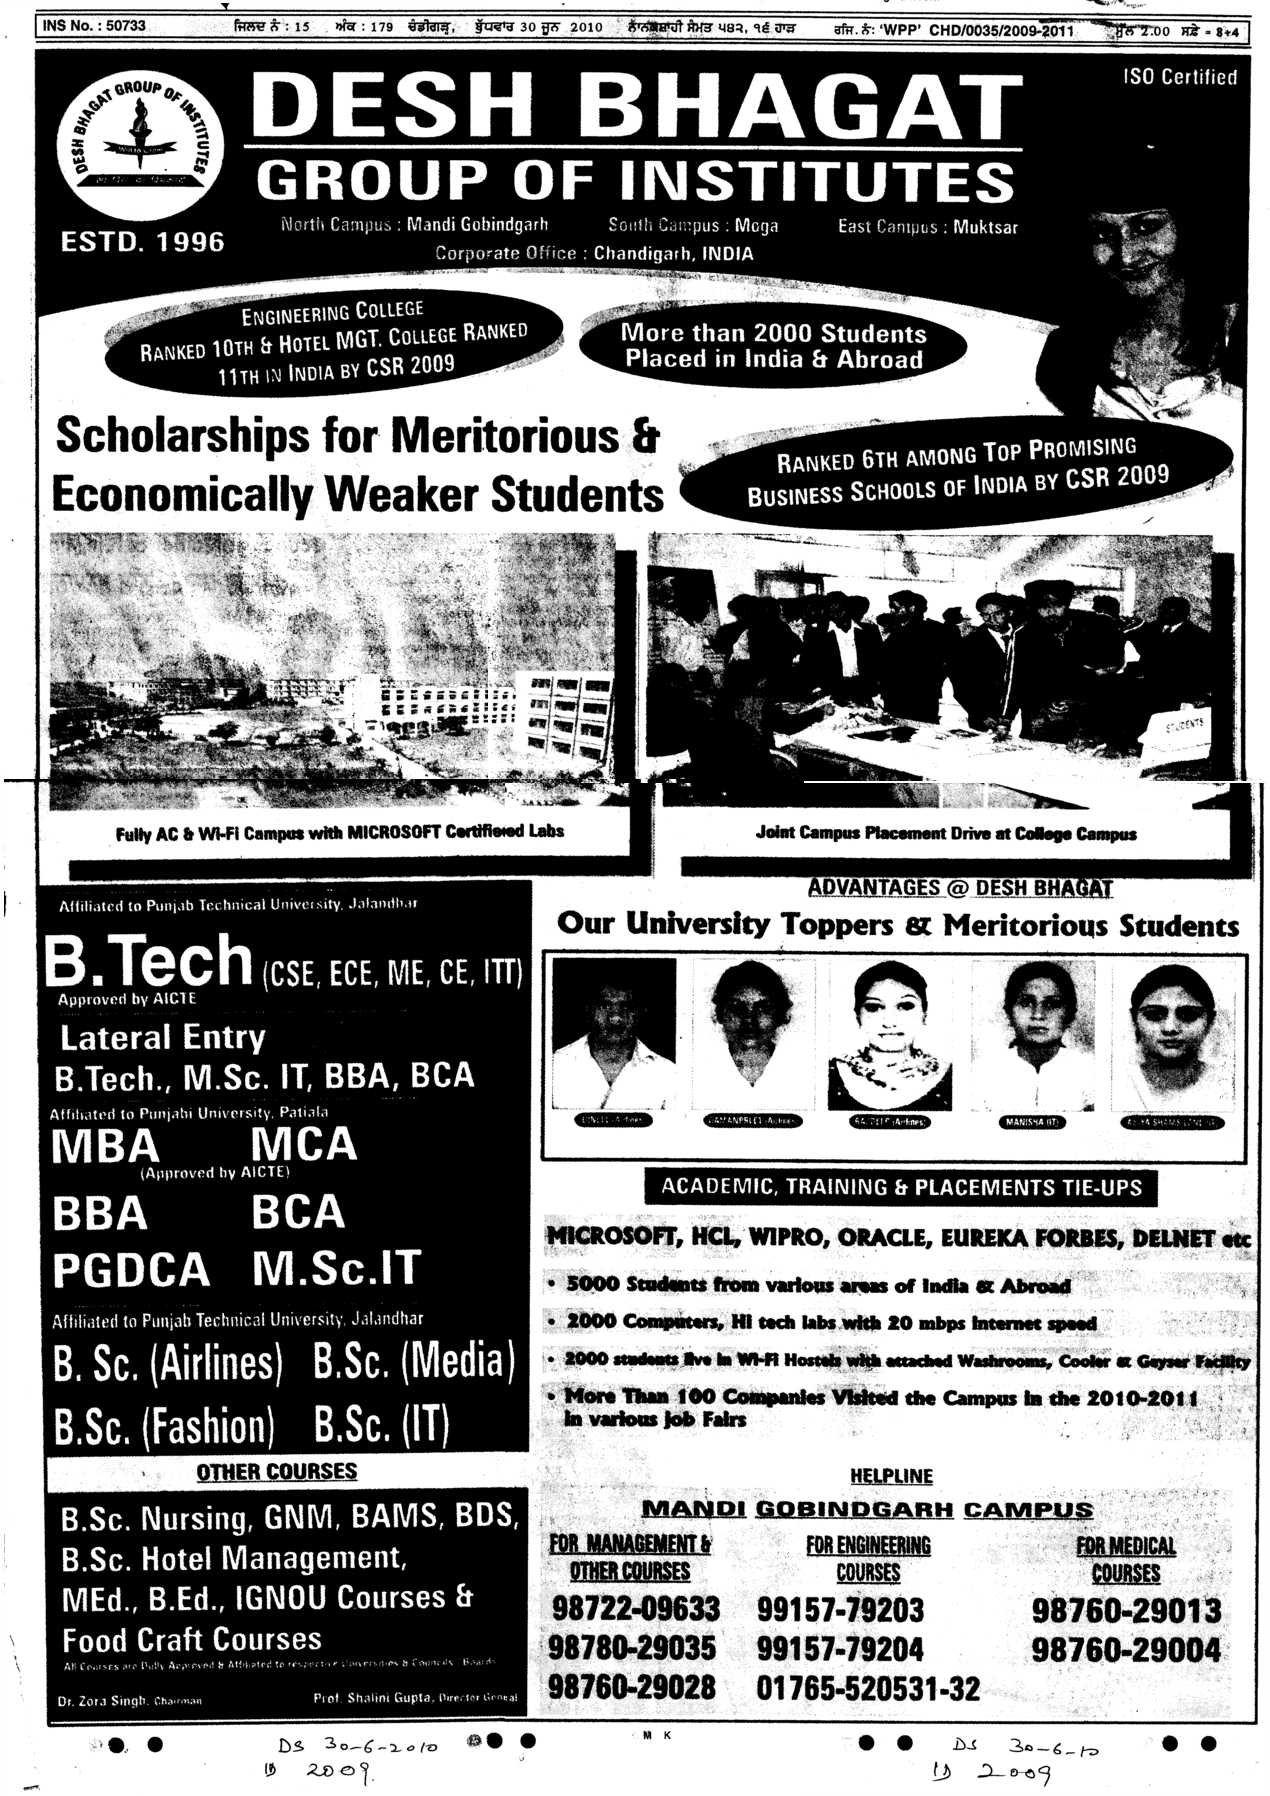 B Tech MBA and PDGCA etc (Desh Bhagat Group of Institutes)